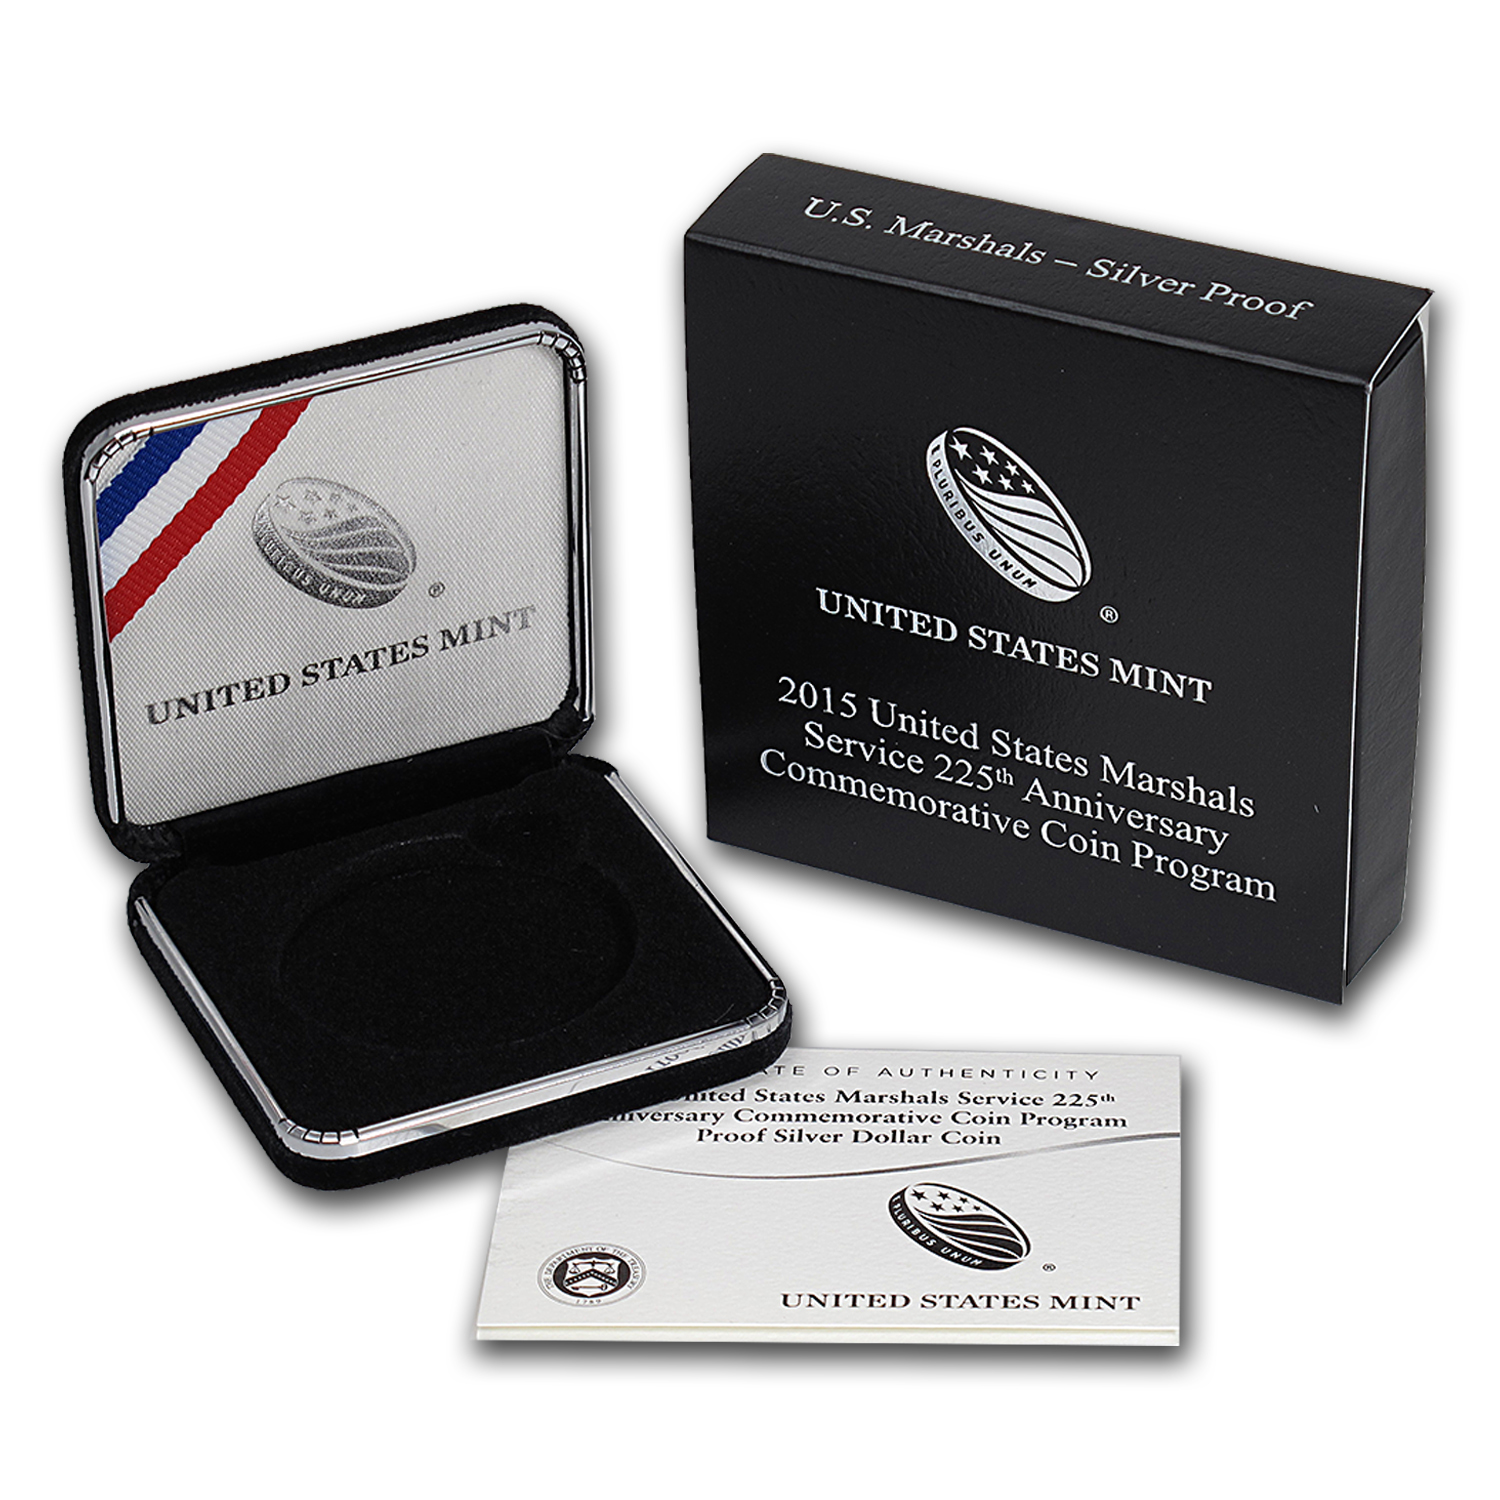 OEM Box & COA - 2015 U.S. Mint U.S. Marshalls Silver Proof Coin